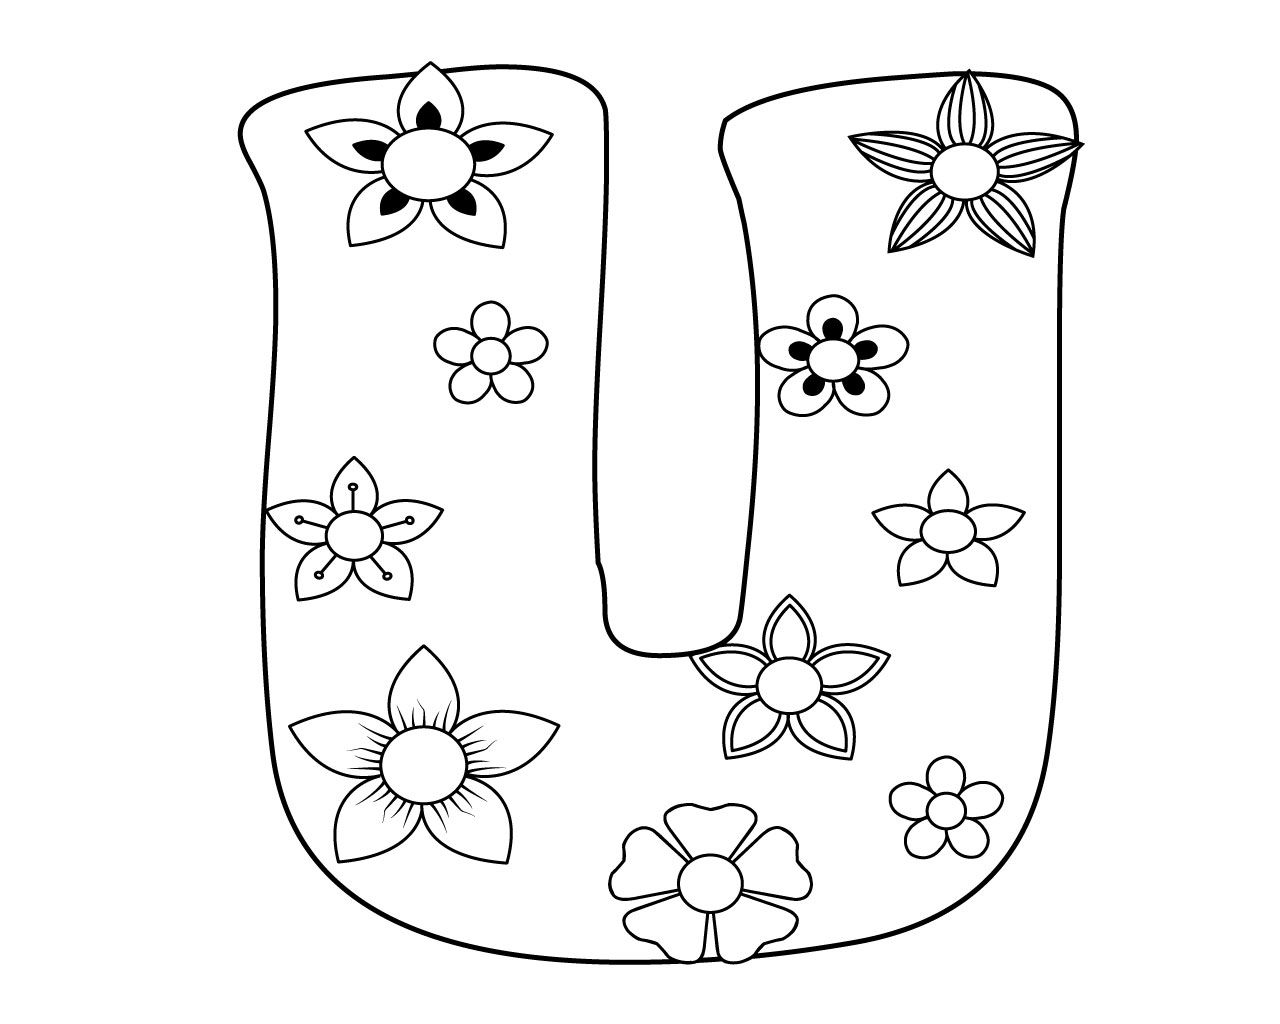 Letter U Coloring Page To Print for Your Little Ones